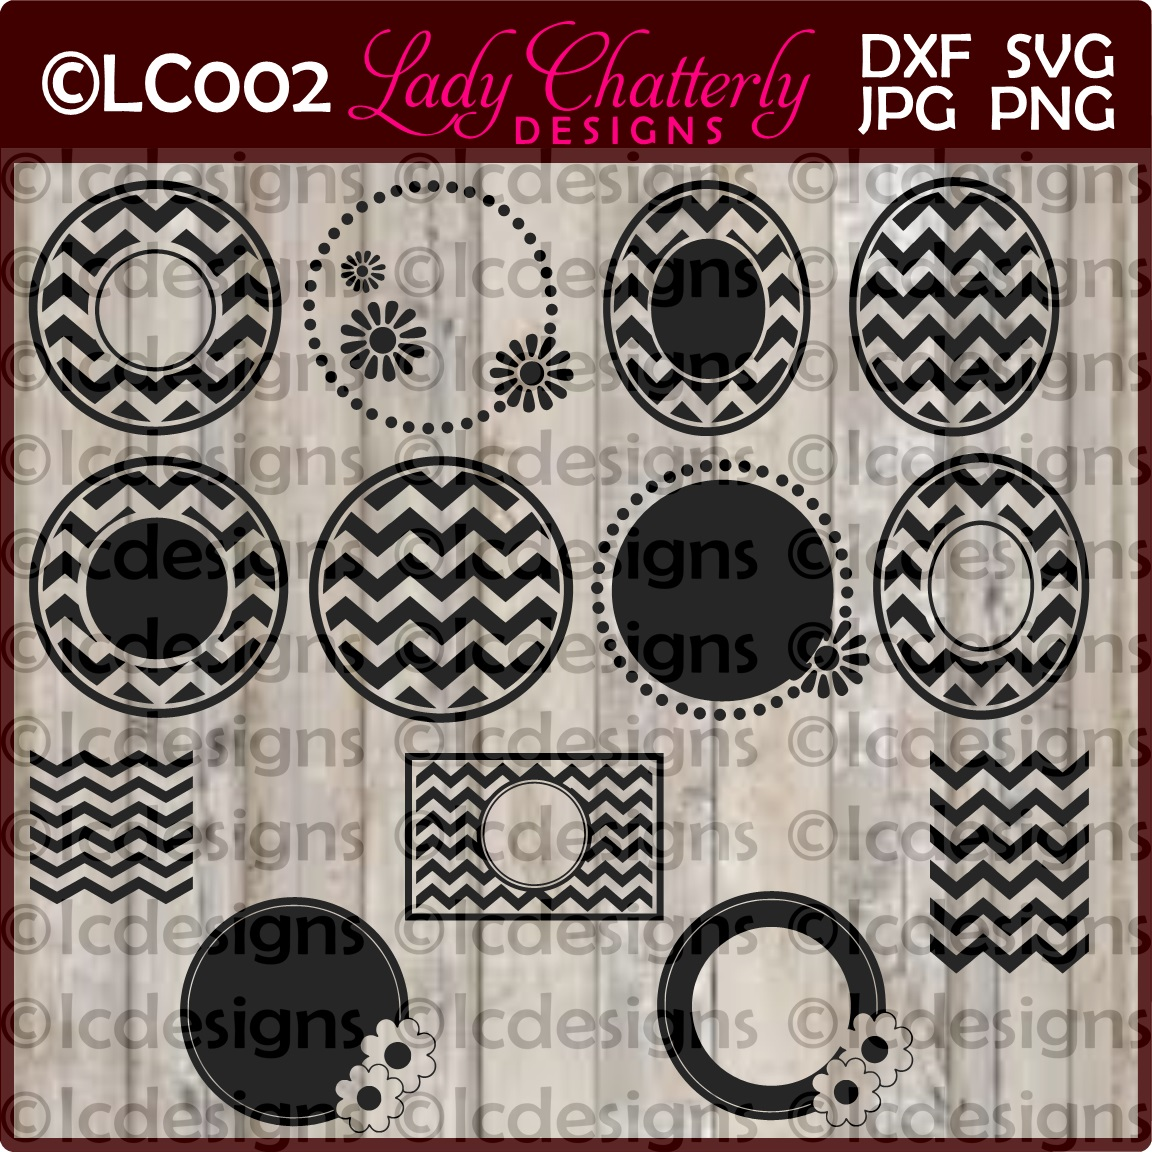 LC002 - Monogram Frames and Patterns example image 1